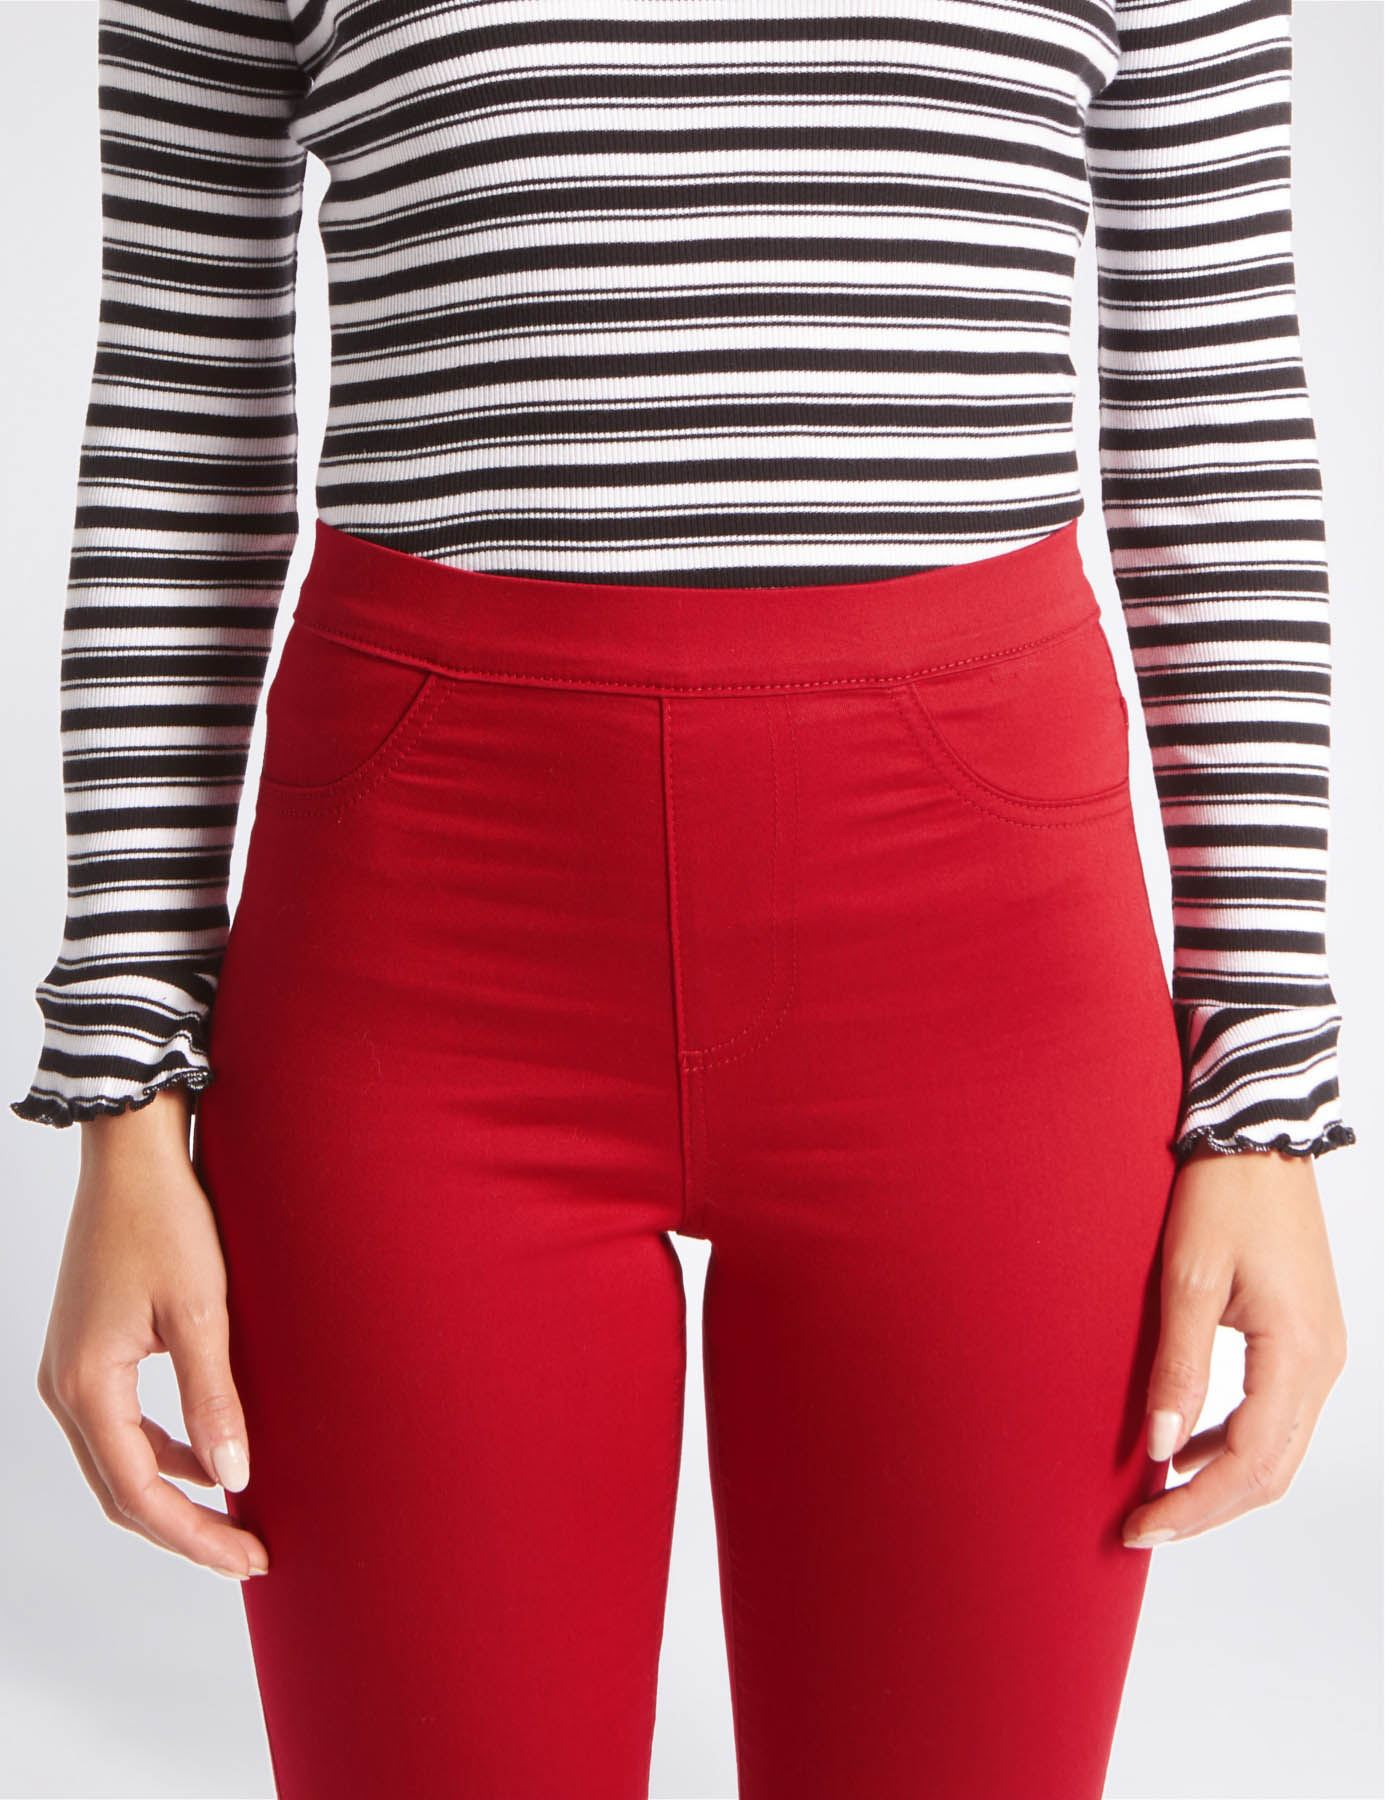 NEW-Ex-M-amp-S-Womens-Stretch-Fit-High-Waist-Skinny-Jeggings-Size-8-10-12-14-16-18 thumbnail 16